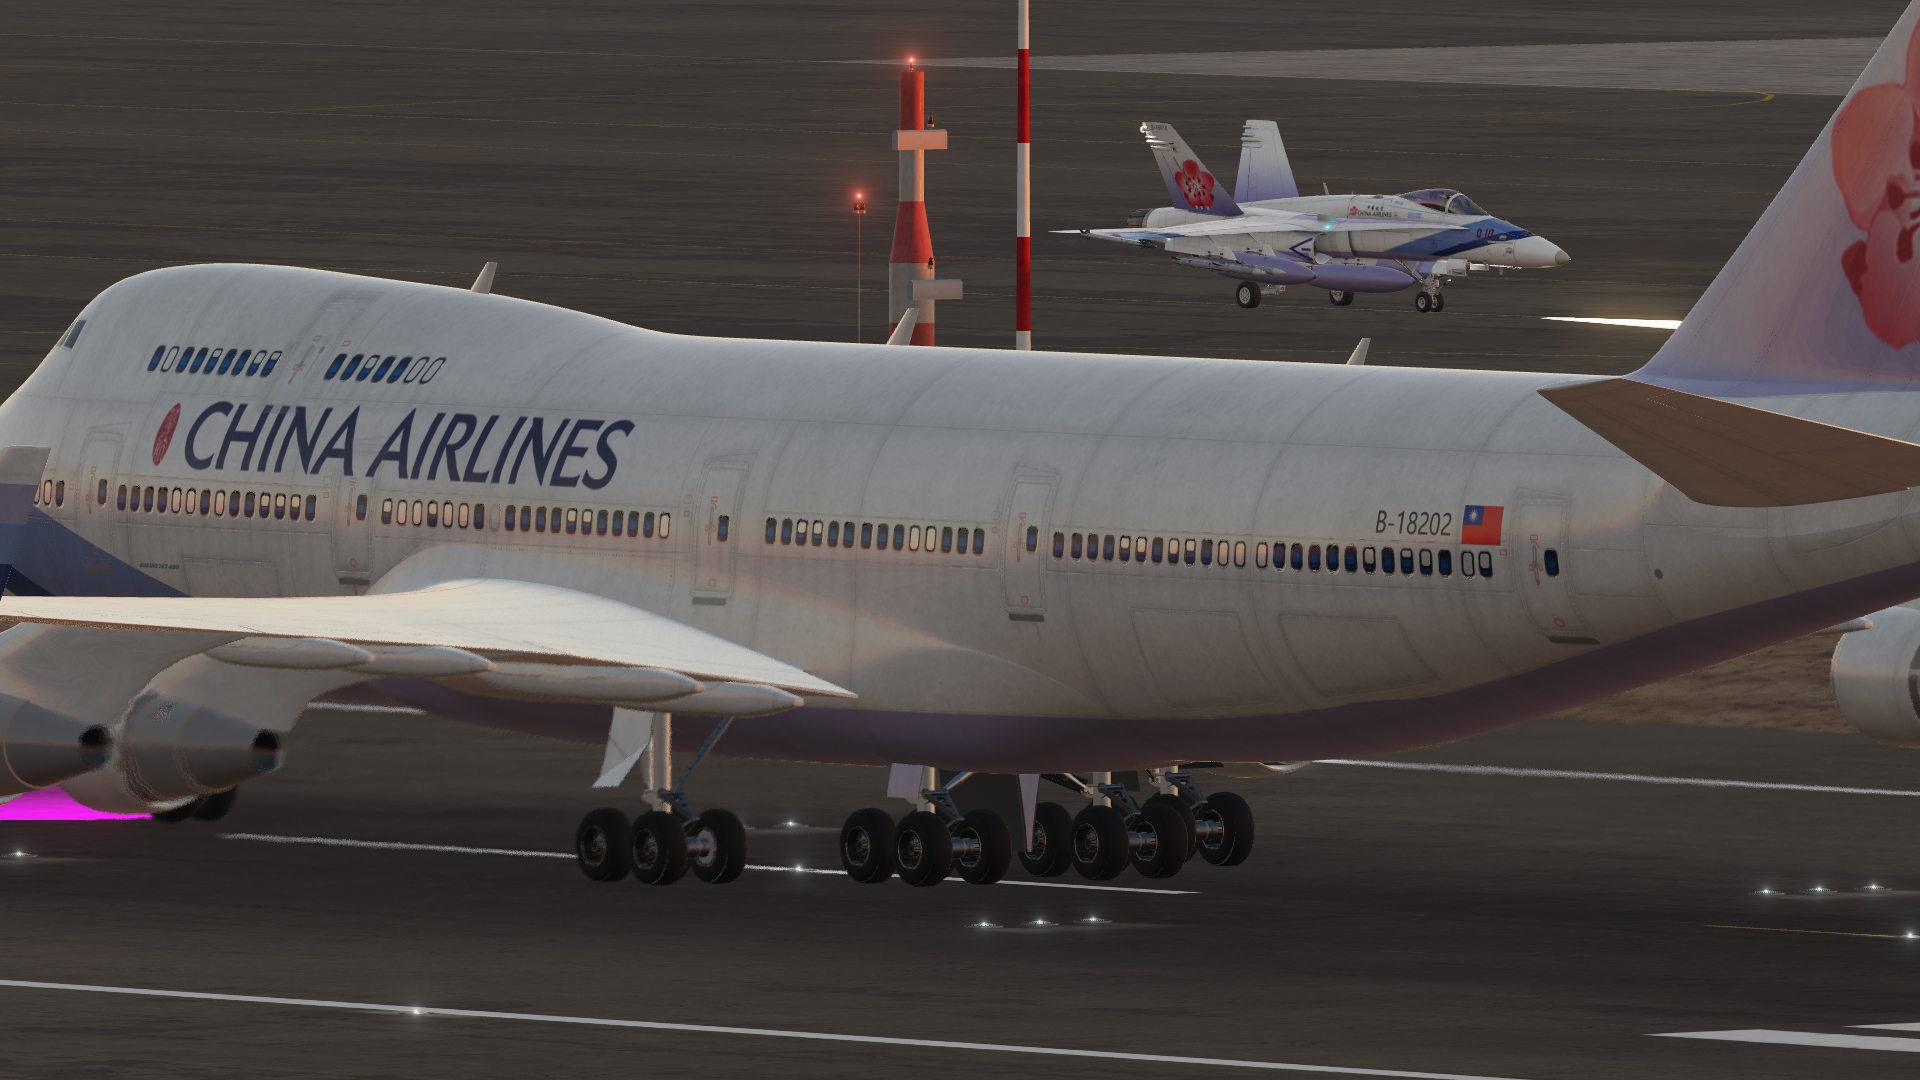 Civil Aircraft Mod Boeing 747-400 China Airlines Livery v1.1